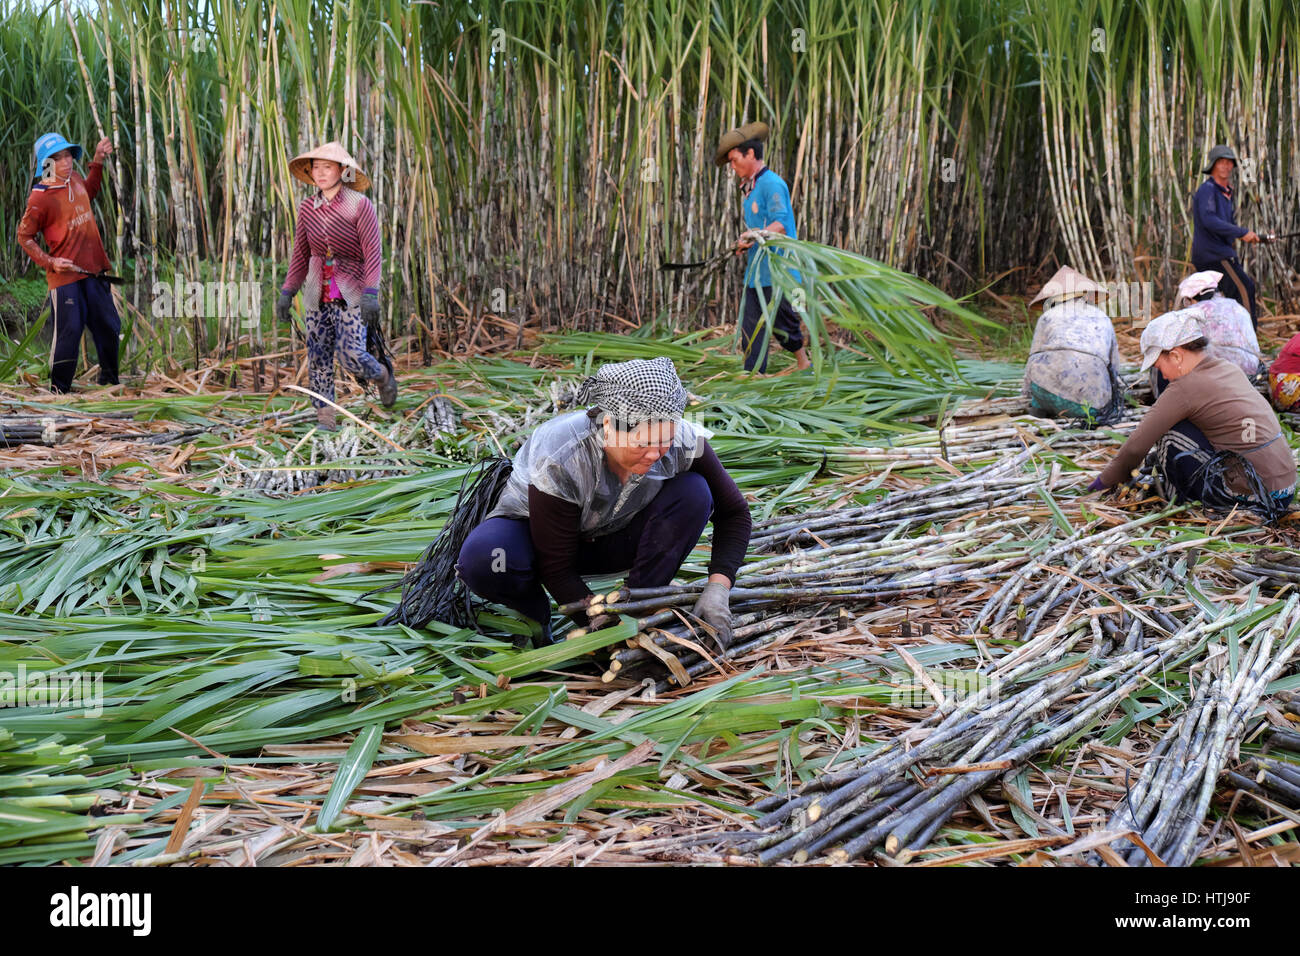 SOC TRANG, VIET  NAM- JULY 14, 2016: Group of Asian farmer working on sugarcane field, farmers harvesting sugar - Stock Image